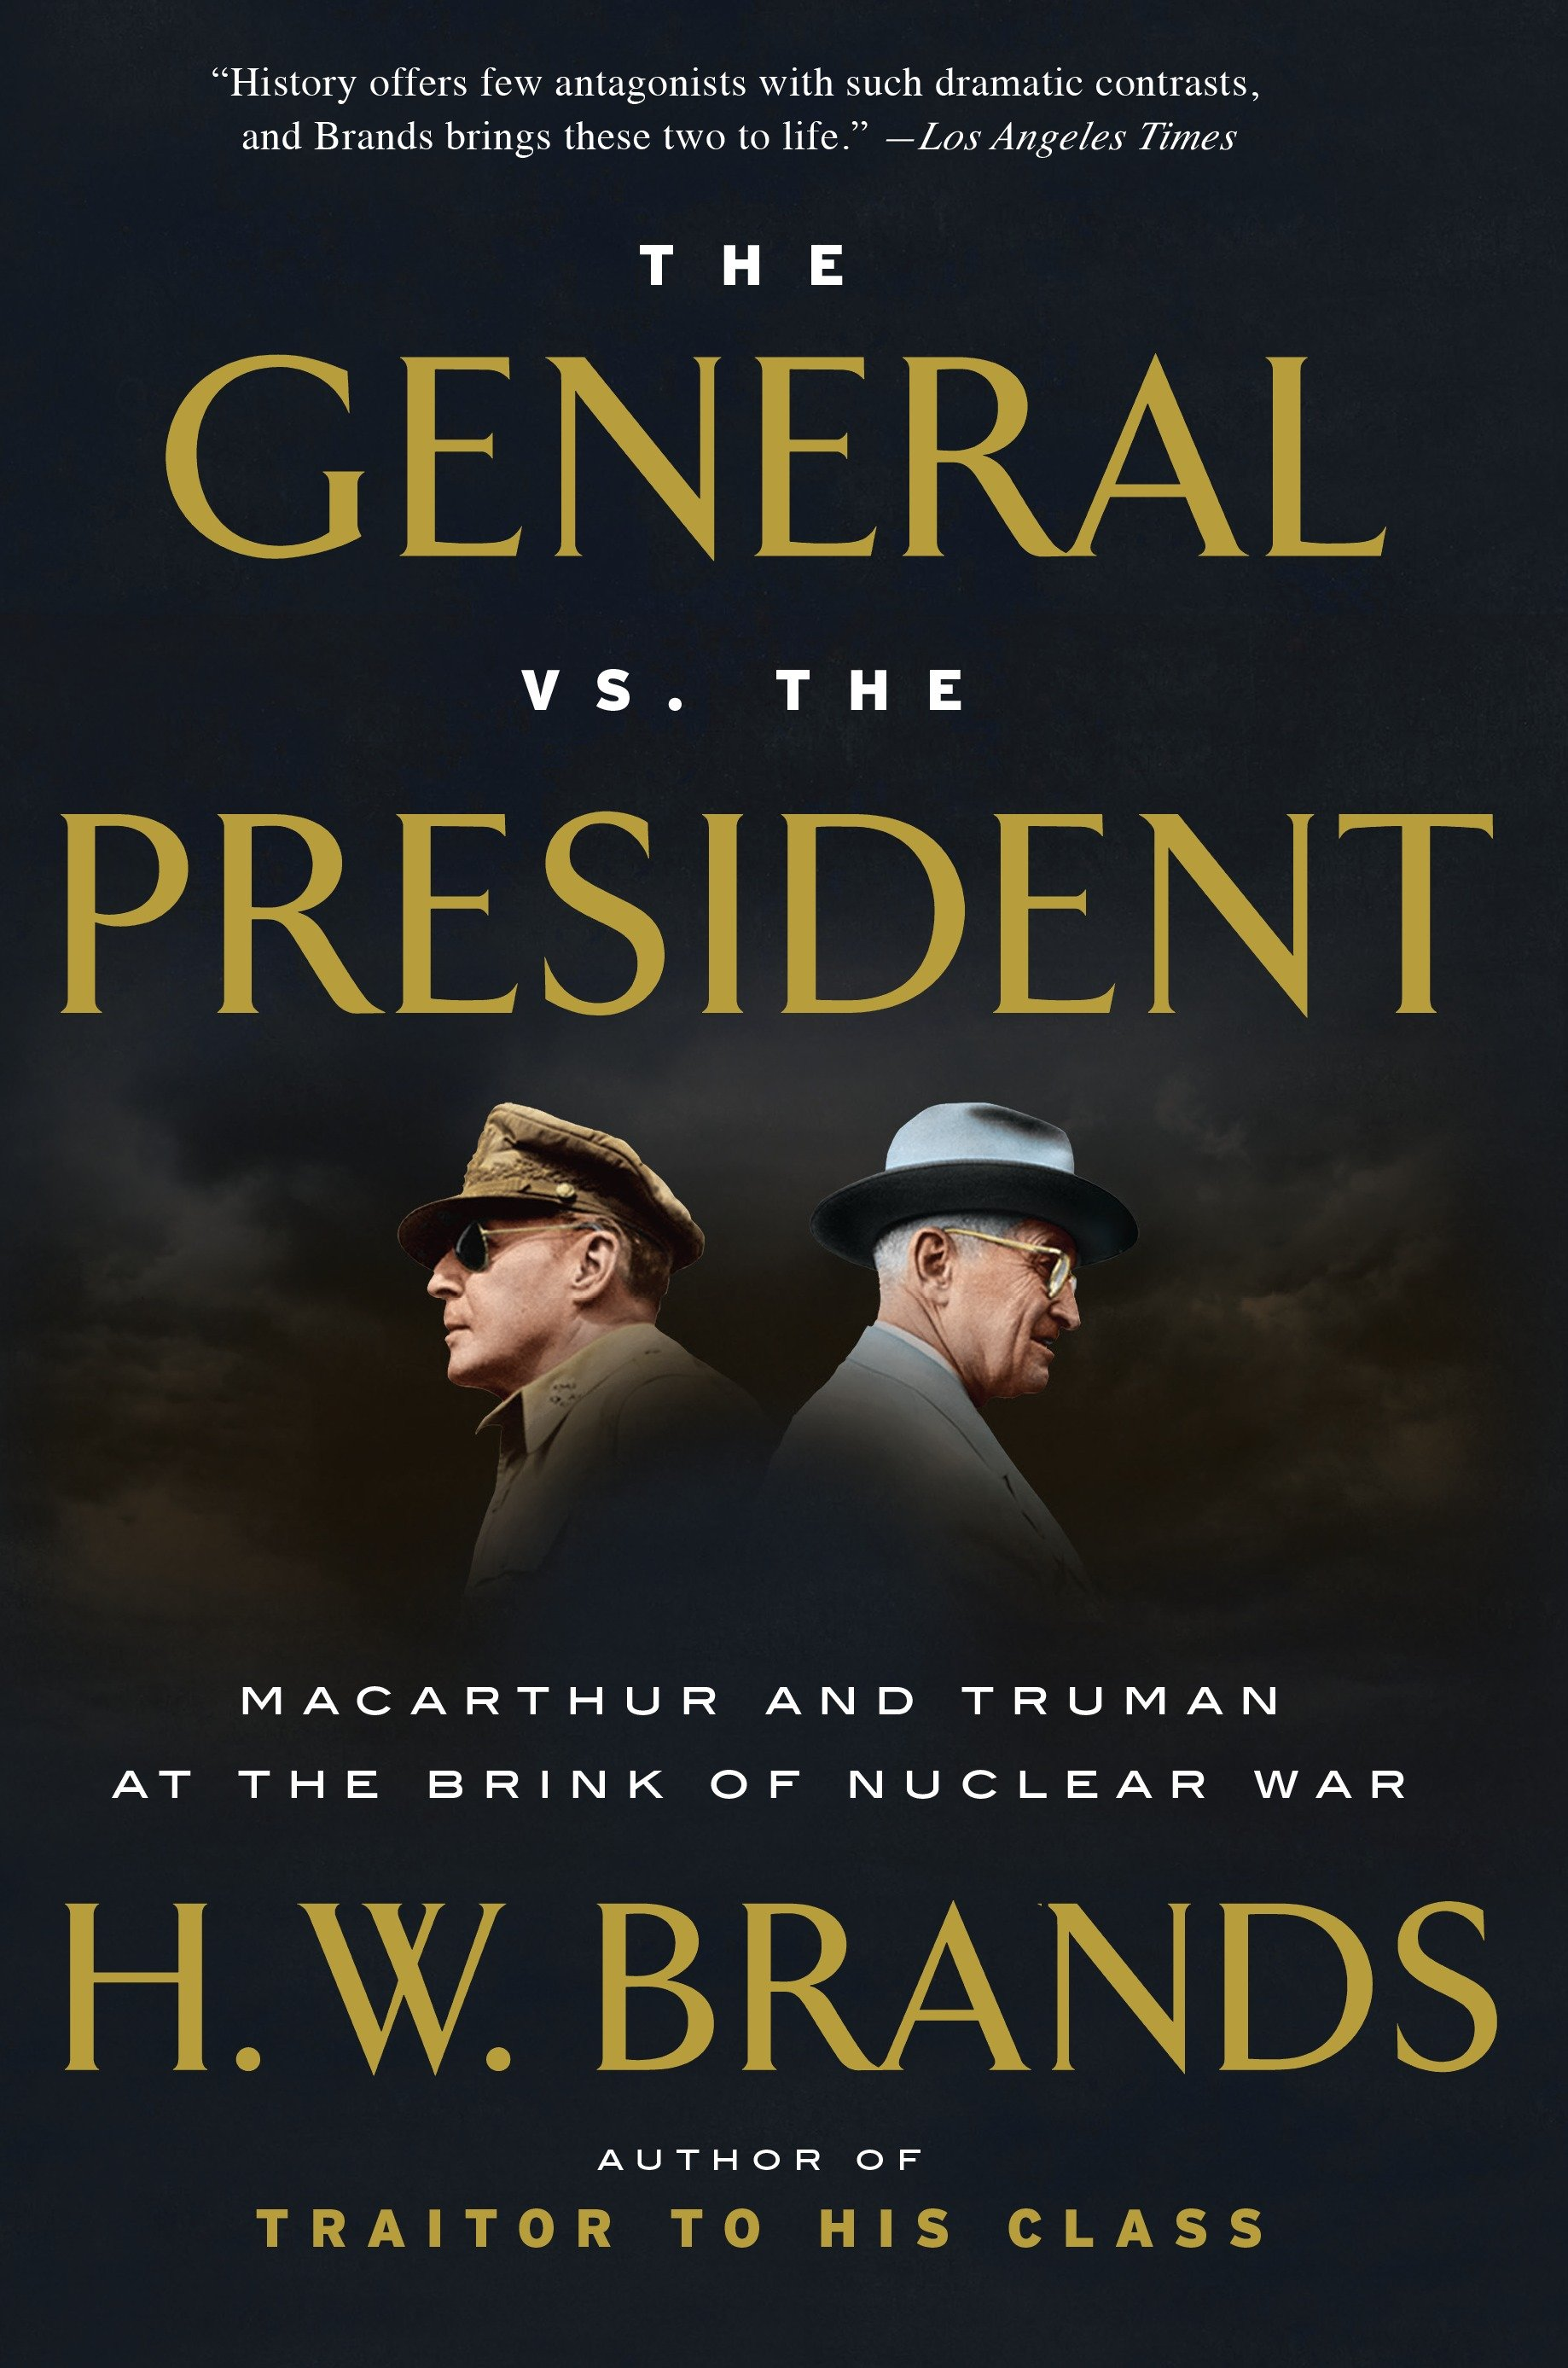 The General vs. the President MacArthur and Truman at the Brink of Nuclear War